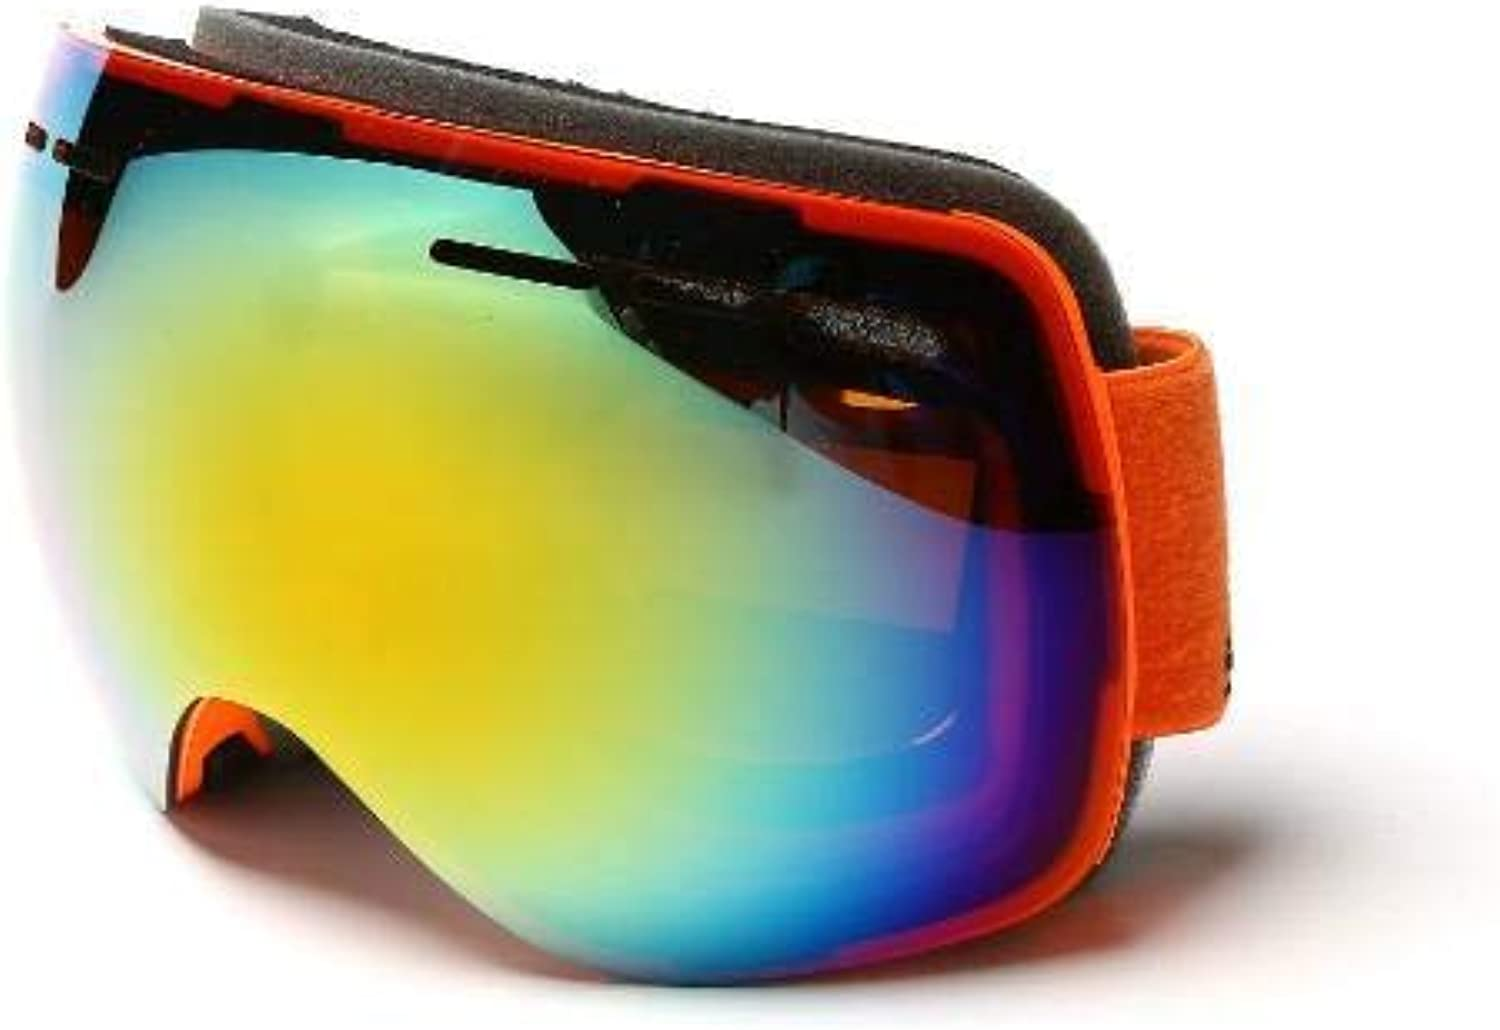 TtKj Sports Glasses Ski Goggles DoubleLayer AntiFog and SandProof can be Used for Hiking Outdoor Sports Glasses.